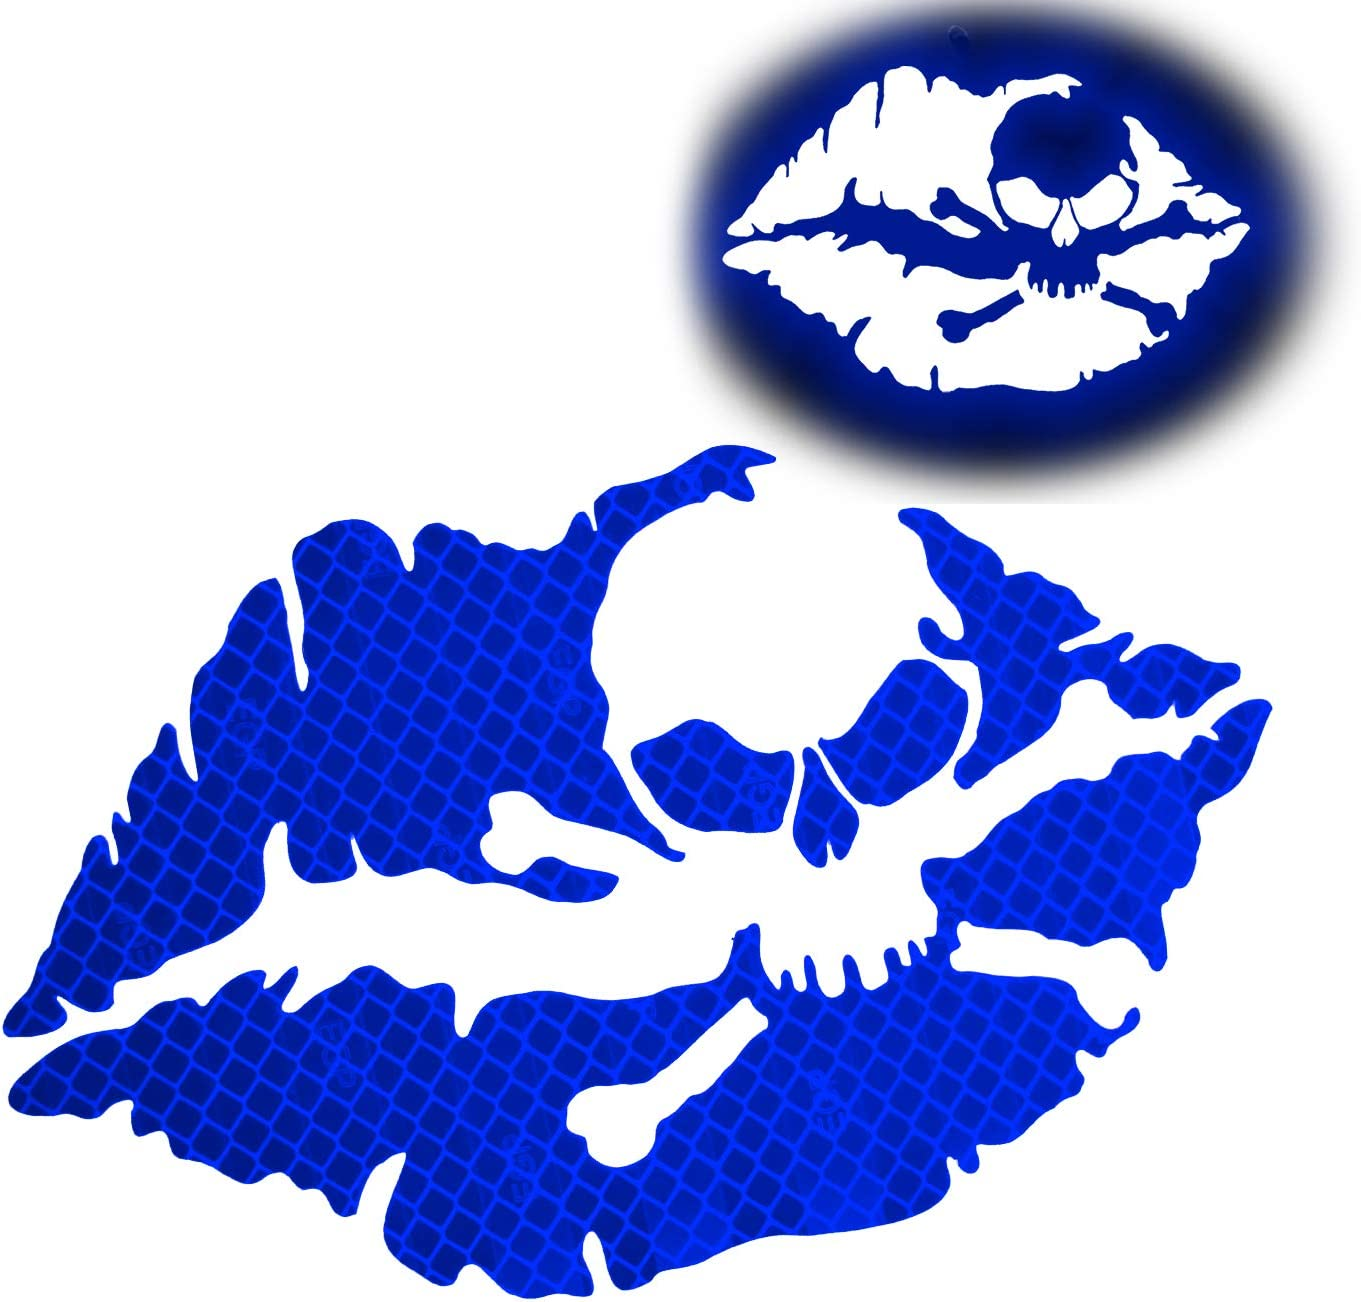 KE-KE 2PCS Kiss of Death Skull Crossbones Lips Reflective Sticker Decal Waterproof for Car Motorcycle Helmets Wind Screens Laptops (Blue, 3in Wide)